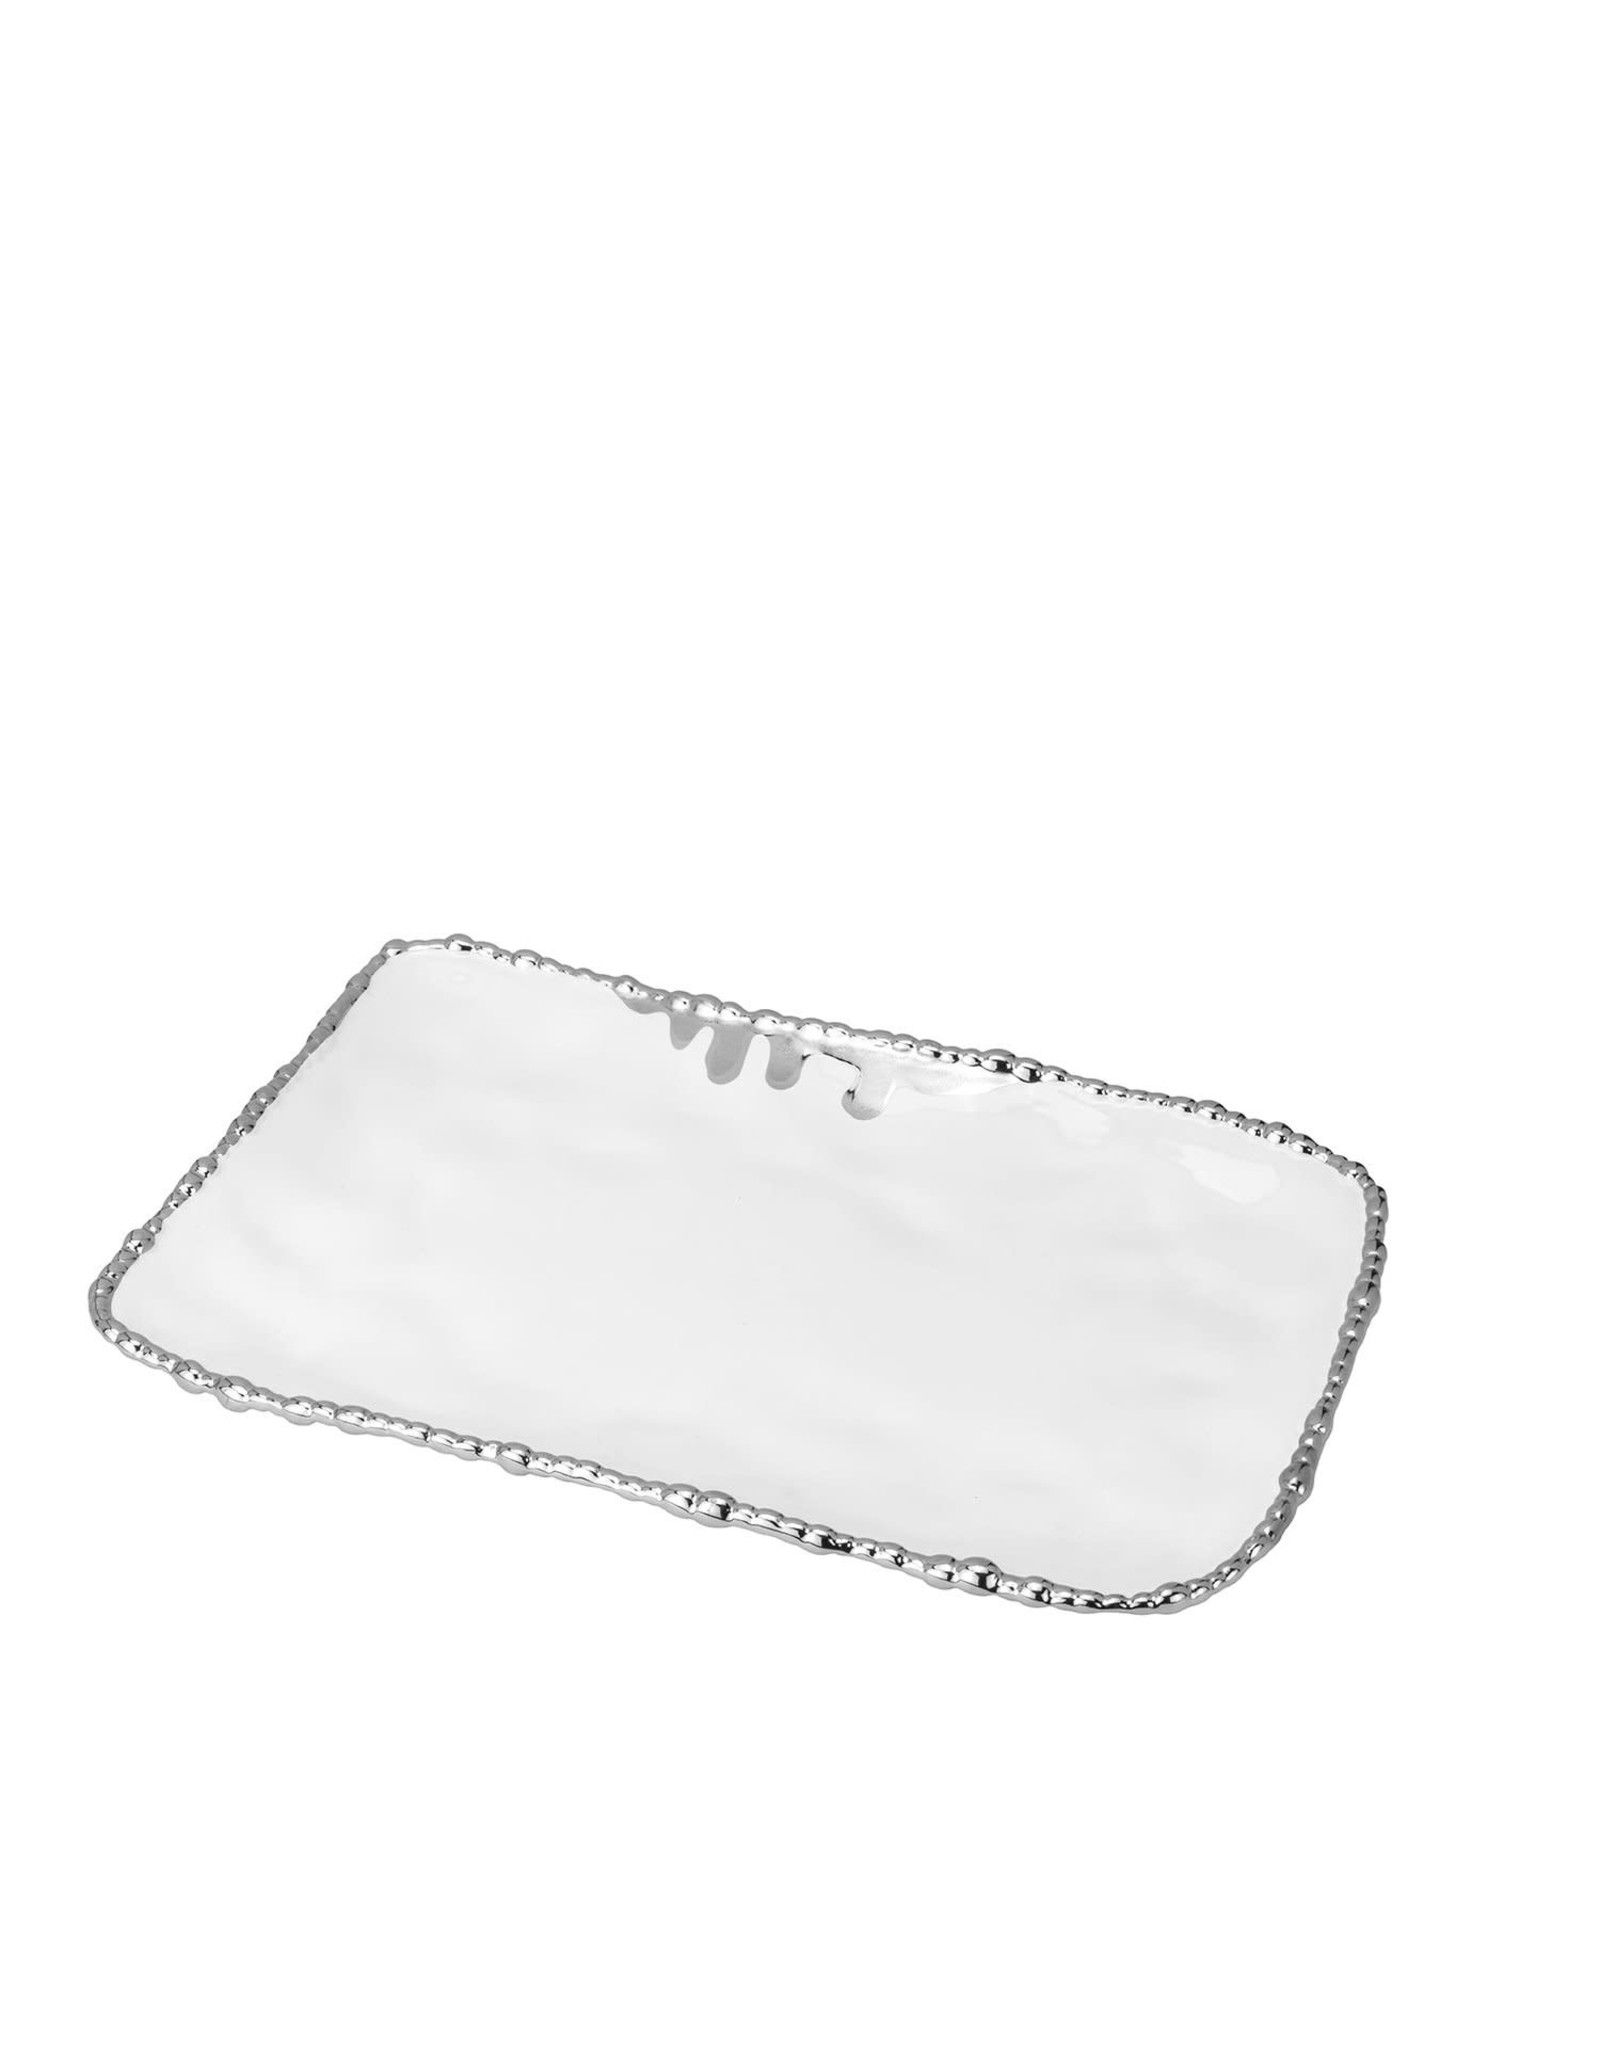 280S White/Silver Serving Tray